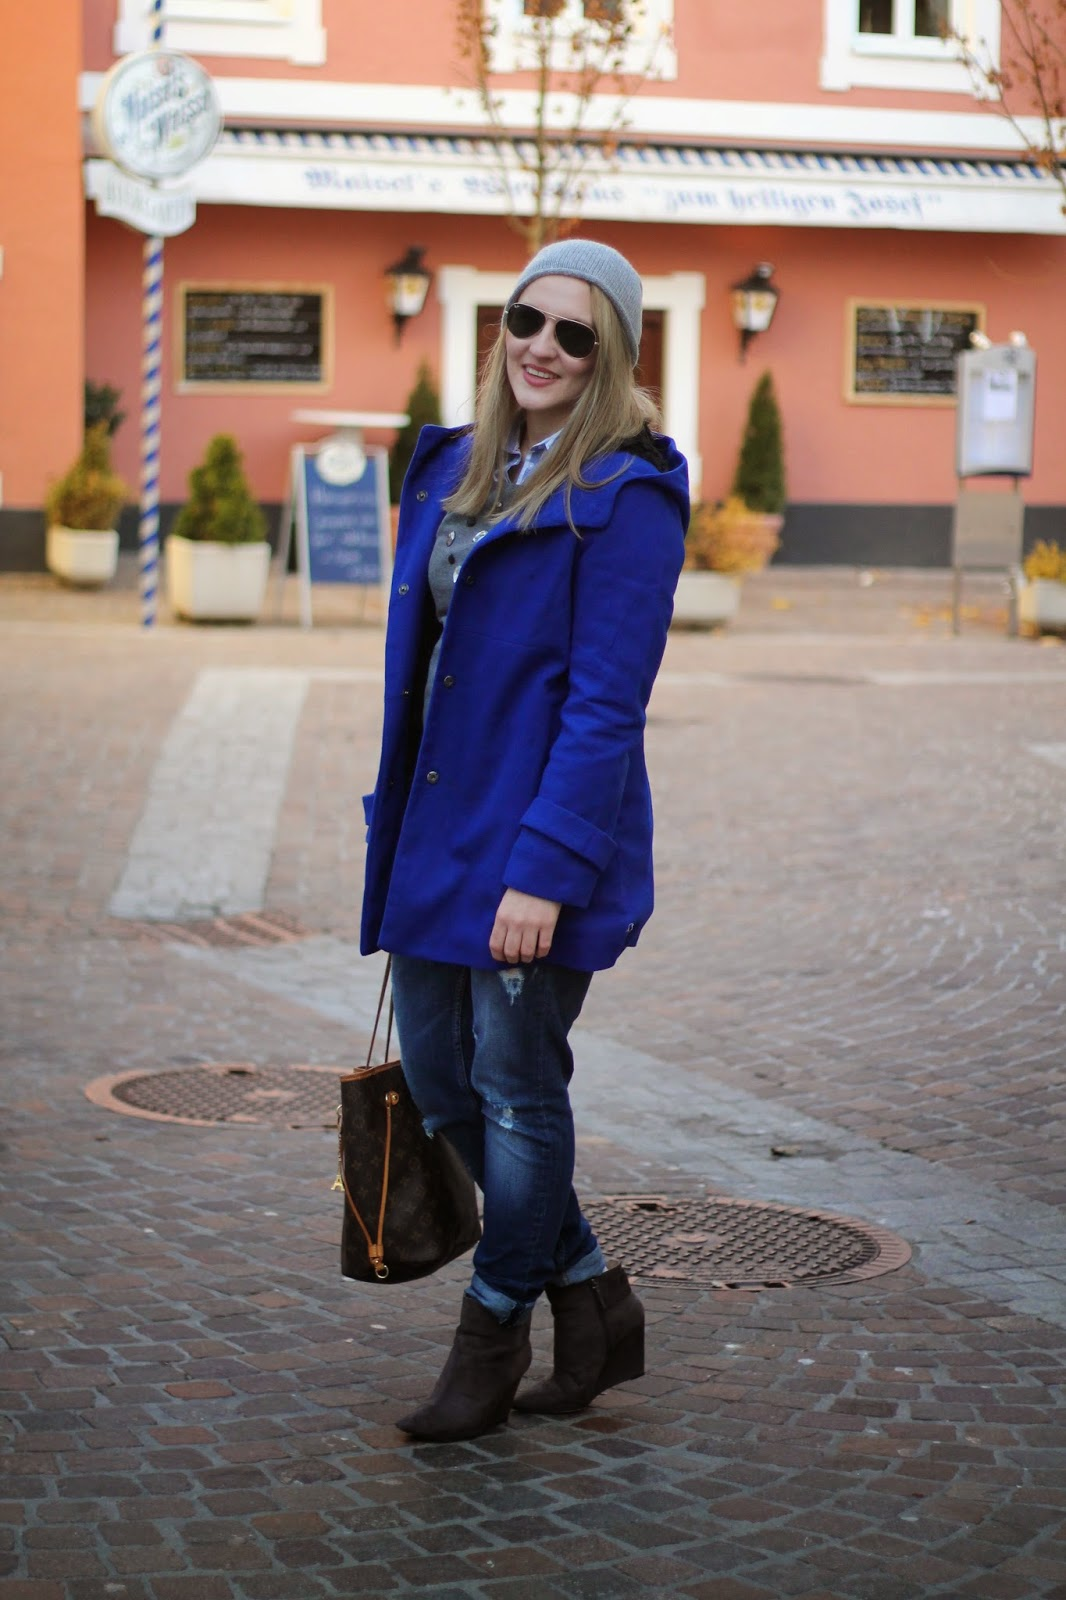 Fashionblogger Austria / Österreich / Deutsch / German / Kärnten / Carinthia / Klagenfurt / Köttmannsdorf / Spring Look / Classy / Edgy / Winter / WInter Style 2014 / Winter Look / Fashionista Look / Streetstyle Klagenfurt Vienna Wien Austria / /Winter Outfit /  Beanie Grey Grau H&M / Ray Ban Aviator Sunglasses Sonnenbrille Aviator / H&M Sweater Pulli Grau Grey Blouse White Blue Bluse Weiß Blua / Coat OAsap Blue Mantel Blau / Ann Christine Boyfriend Jeans / Zara Heels Boots Grau Grey / Louis Vuitton Neverfull Monogramm MM / Daniel Wellington Watch /